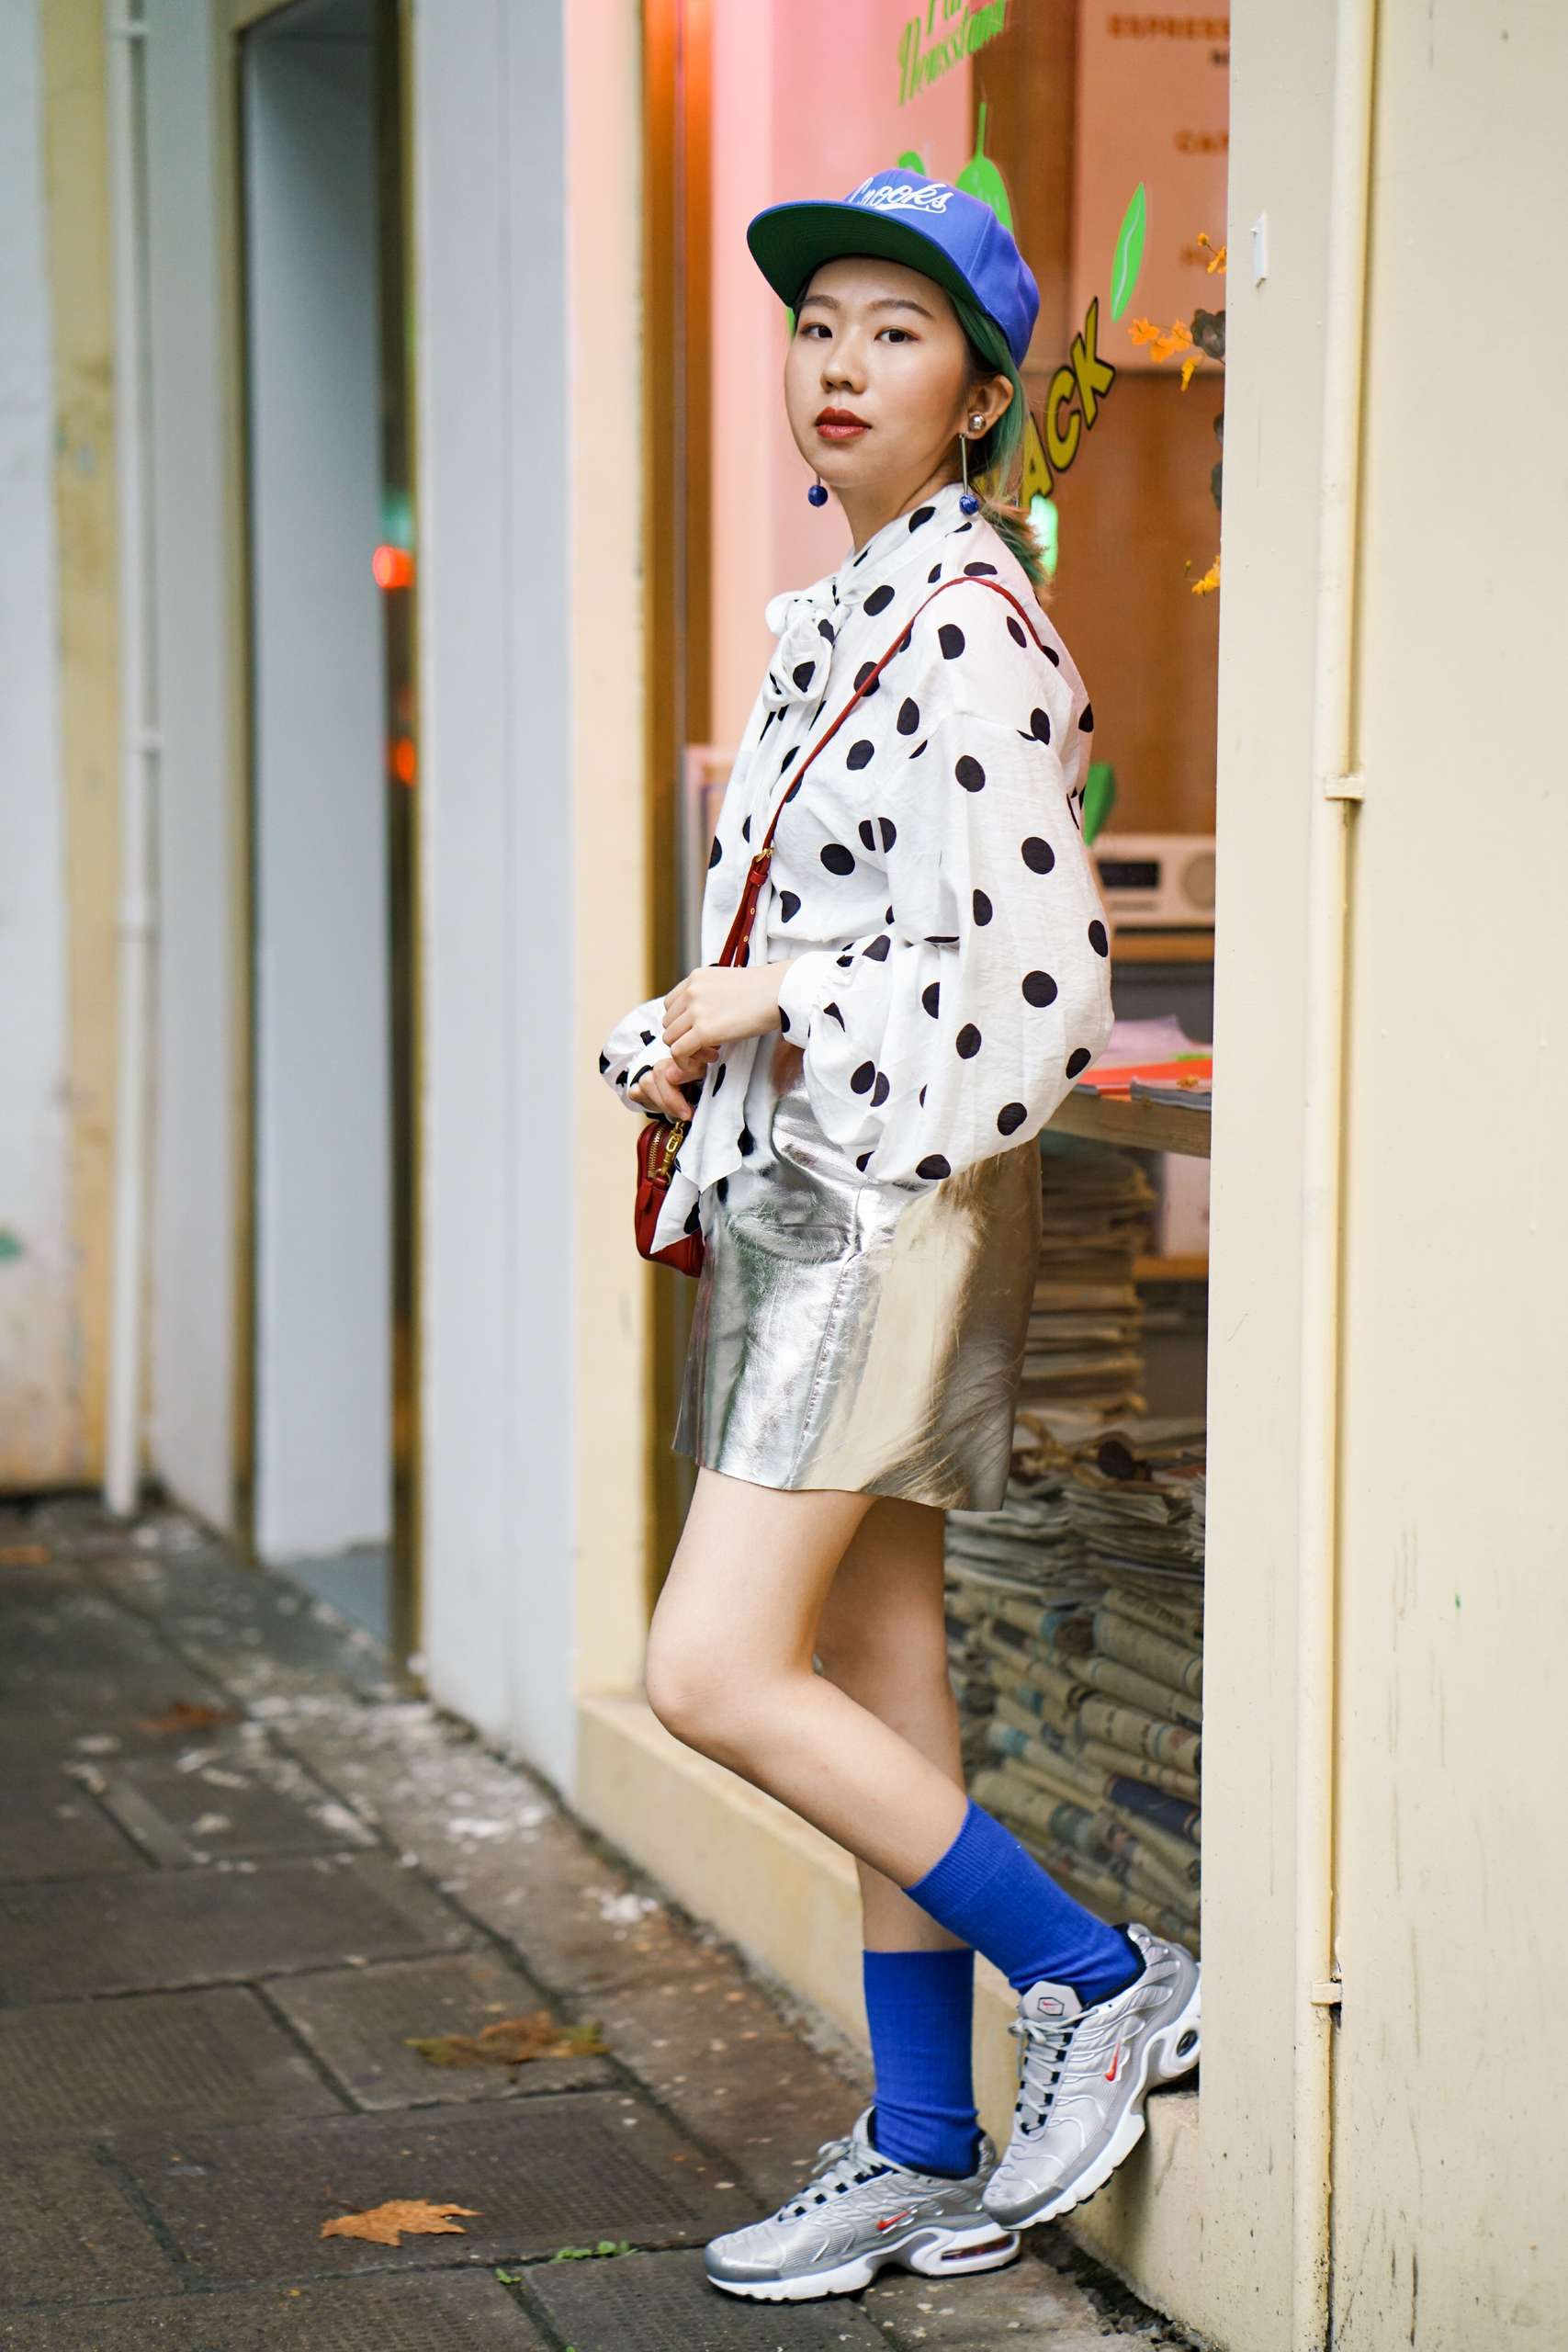 A young woman poses on the street wearing a blue cap, polka dotted shirt, and blue socks.